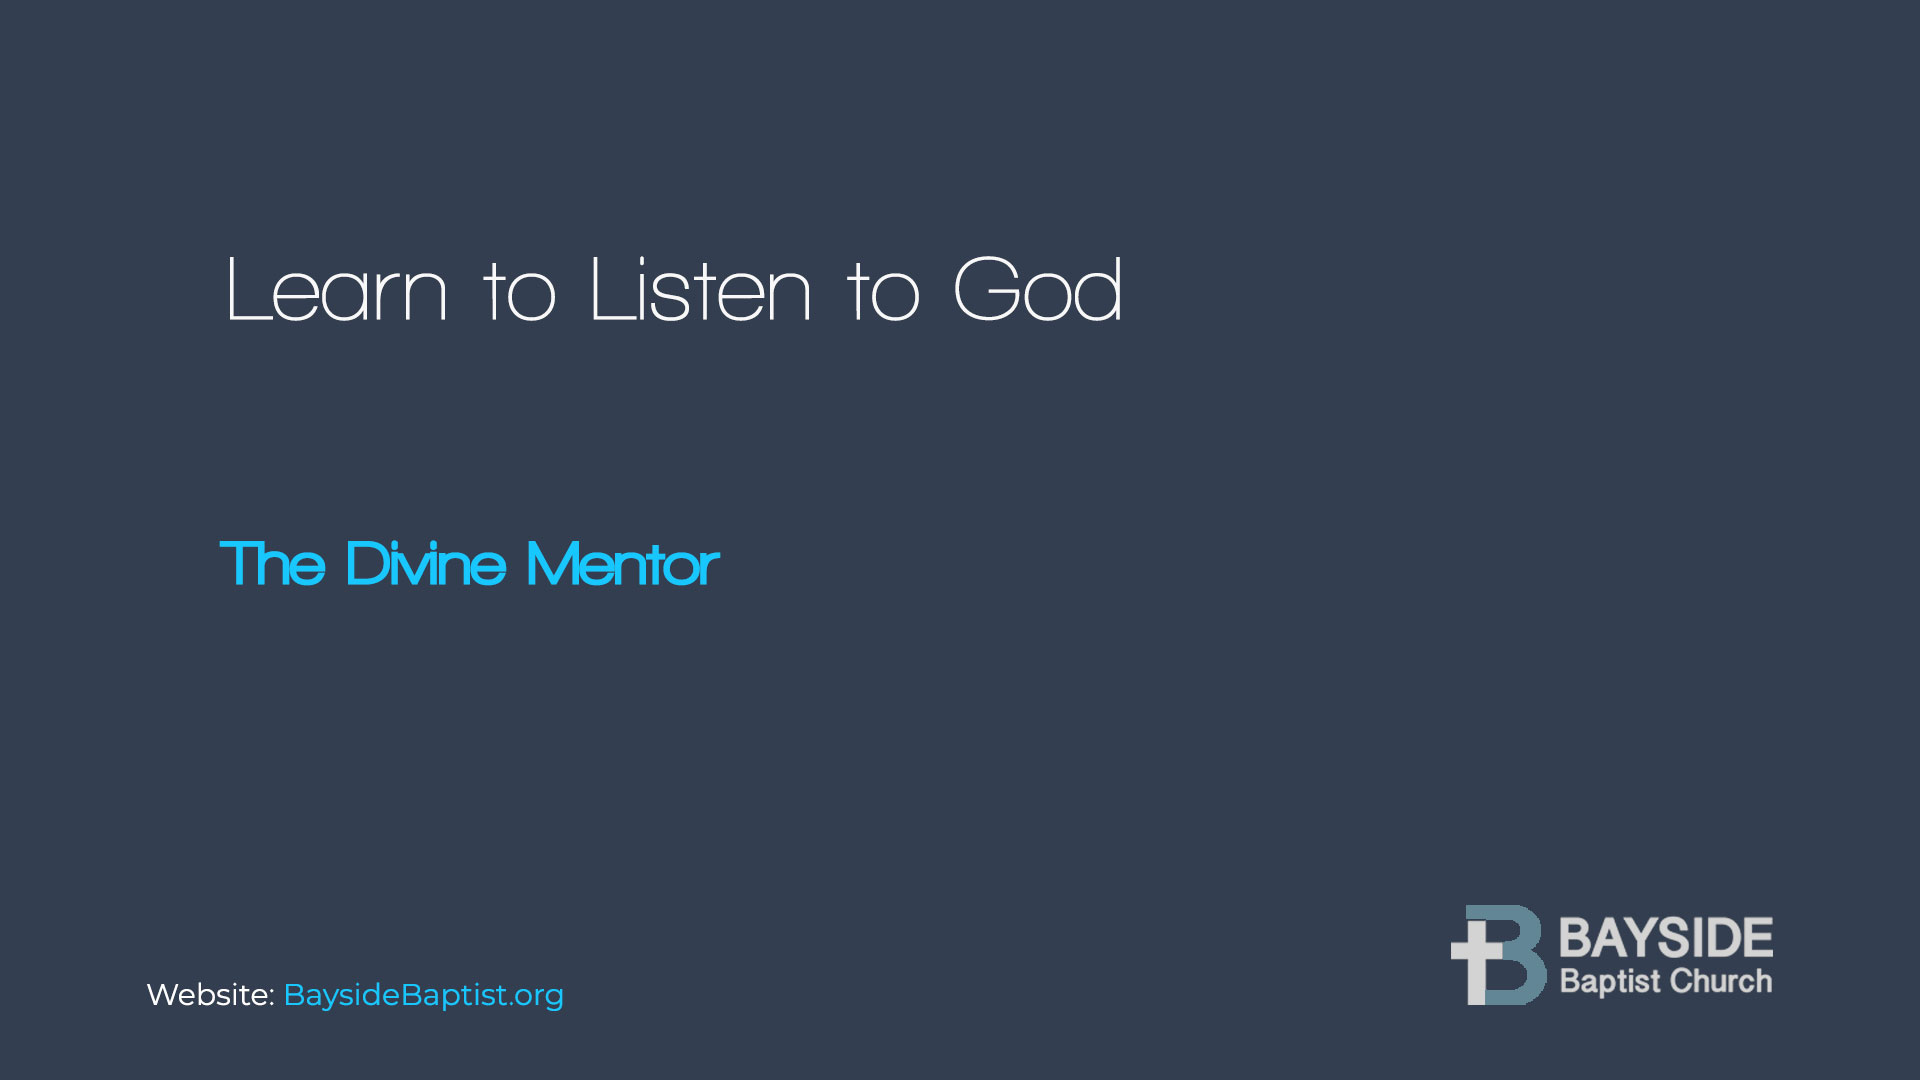 Learn to Listen to God Image